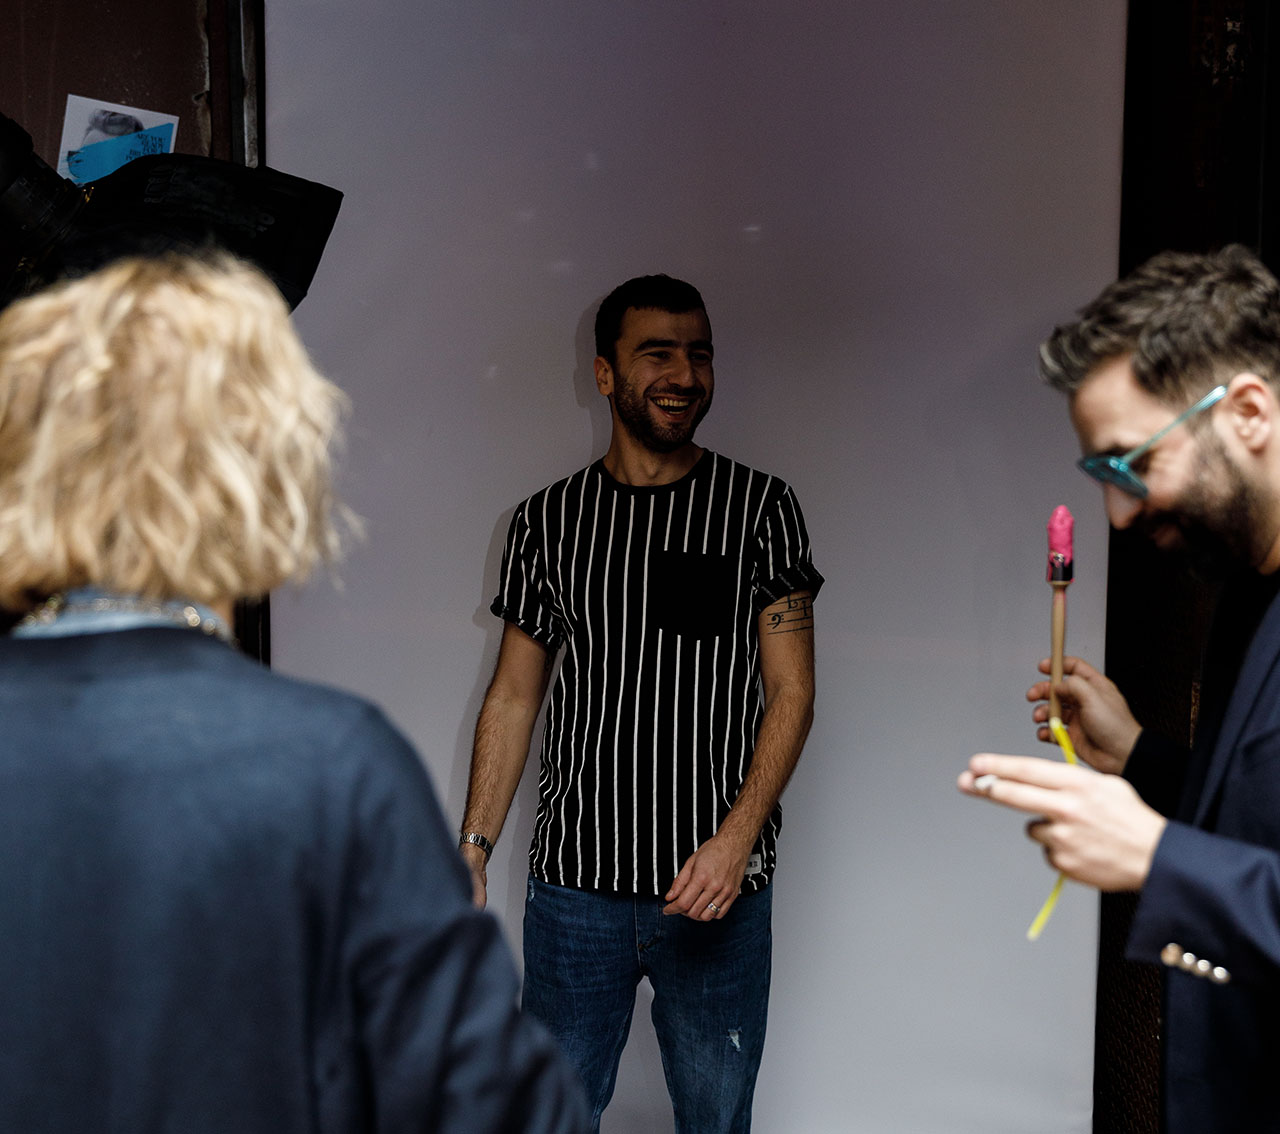 Pop-up photo studio where guests could be photographed by Ioanna Tzetzoumi. Photo by Spyros Chamalis © Yatzer 2019.